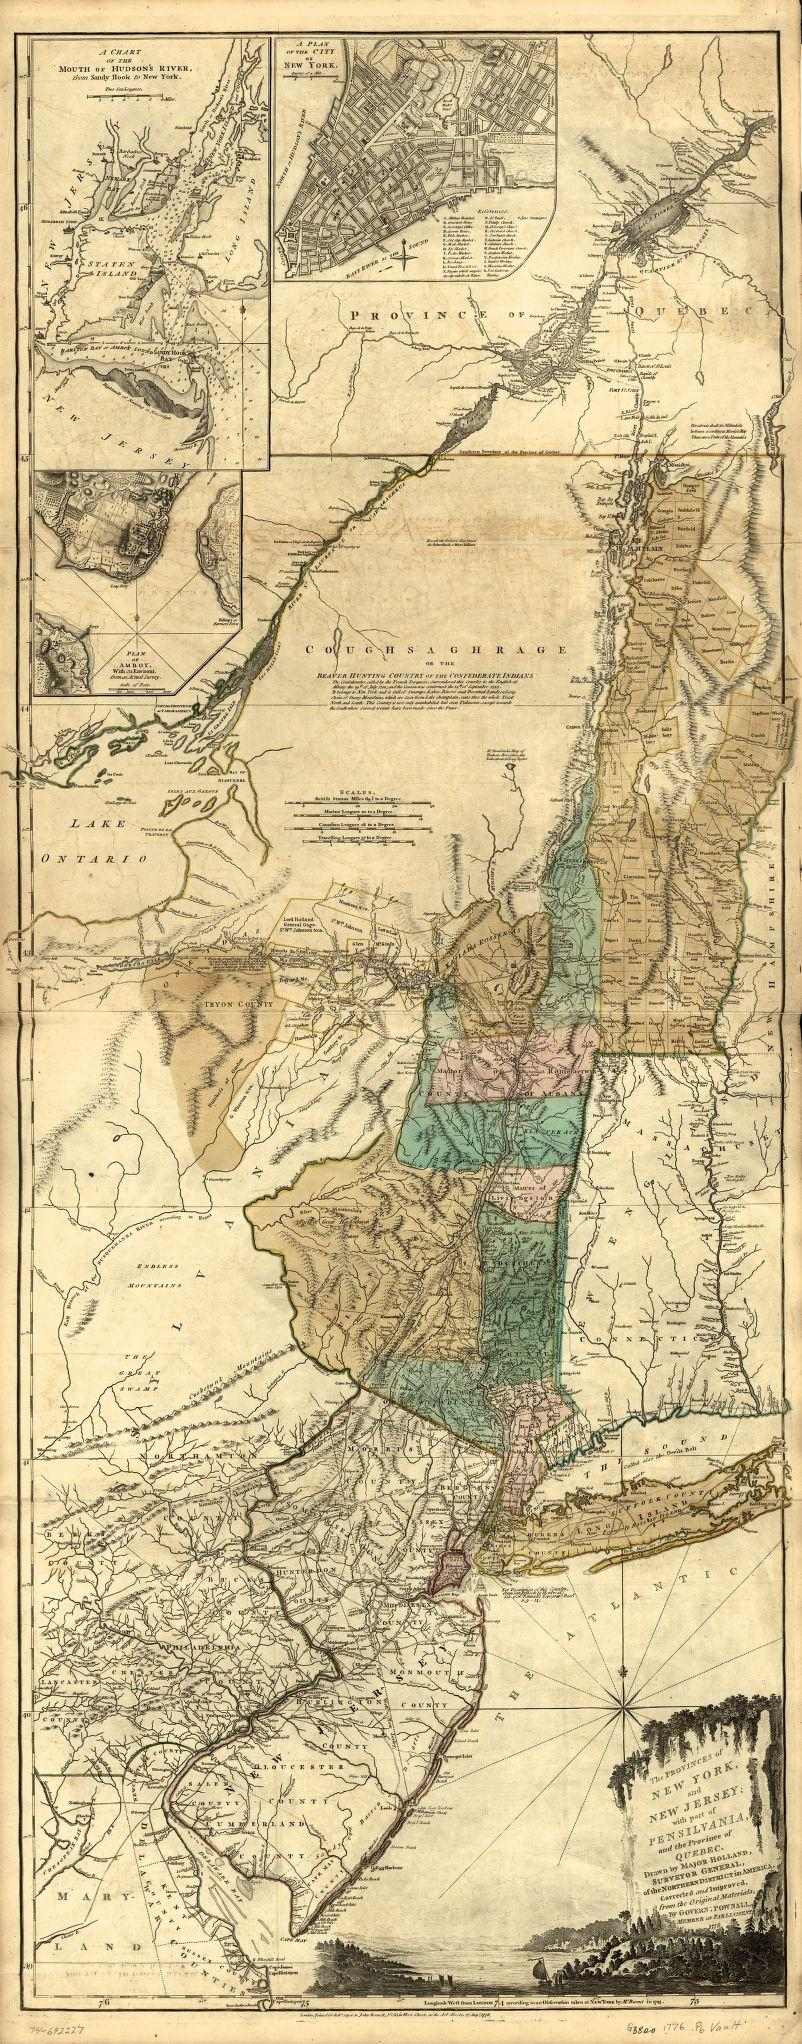 The provinces of New York and New Jersey; with part of Pensilvania, and the Province of Quebec, by Thomas Pownall, ca. 1776. [G3800 1776 .P6]. Courtesy Library of Congress, Washington, D.C.